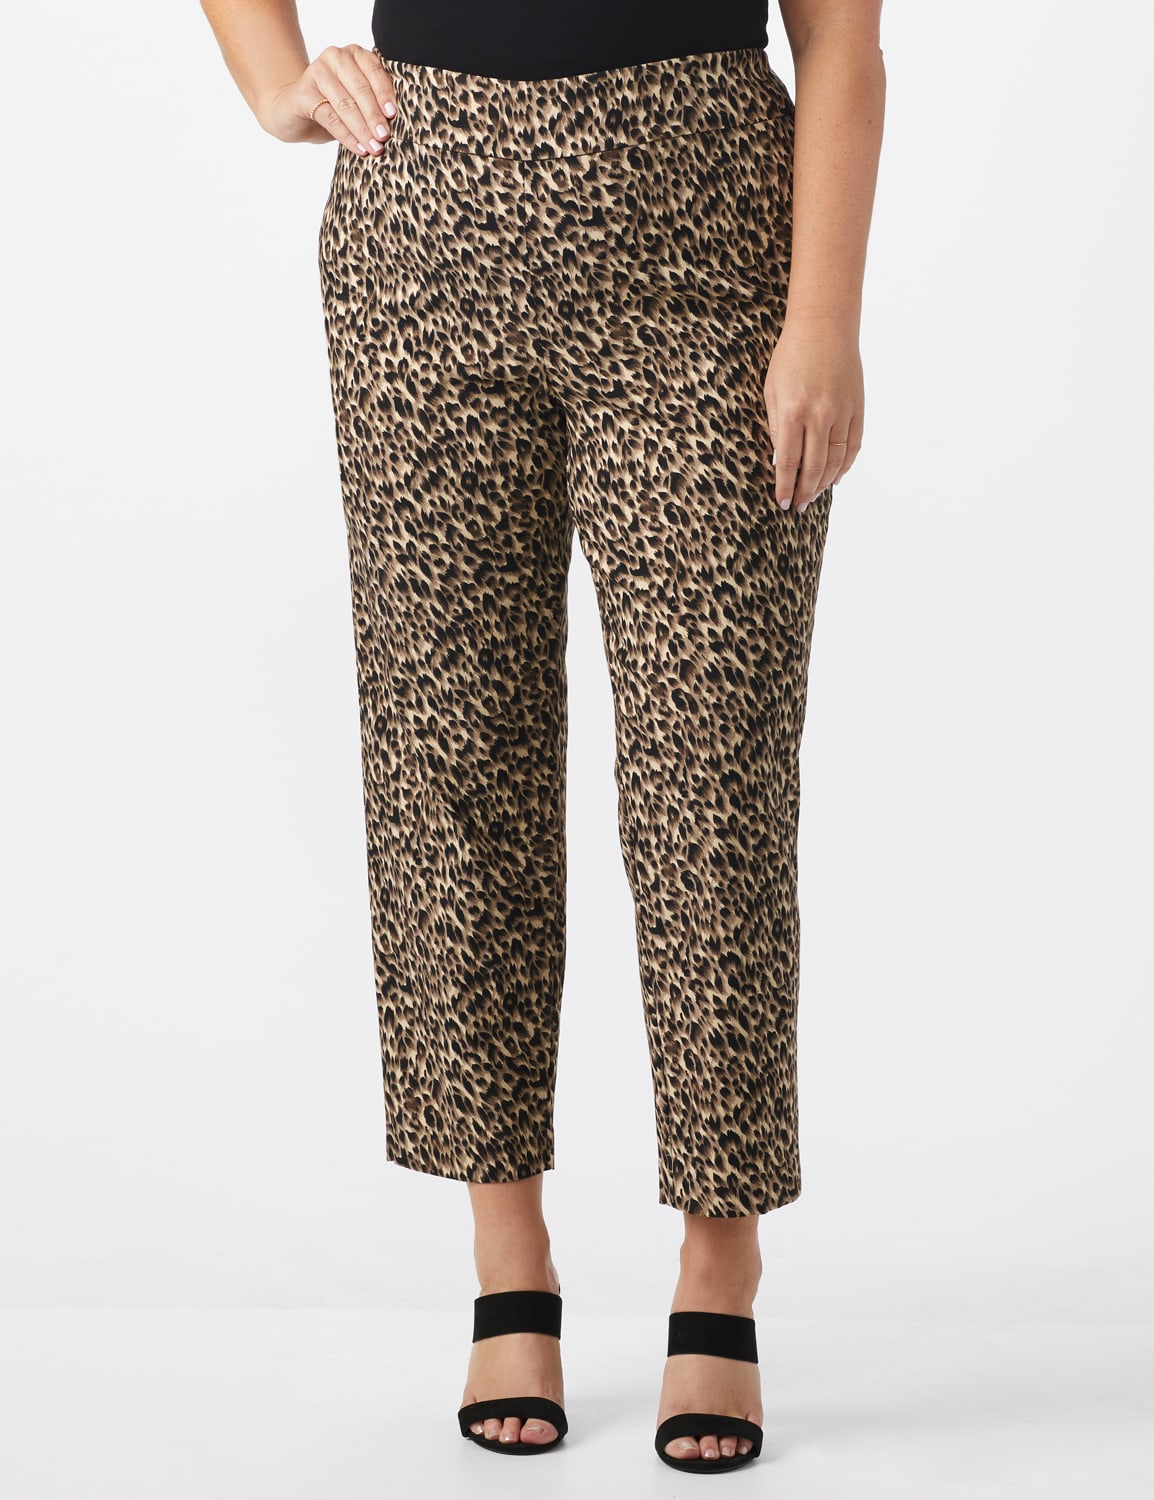 Plus Roz & Ali  Animal Print Superstretch Pull On Ankle Pants With Slits - Black/ Taupe - Front